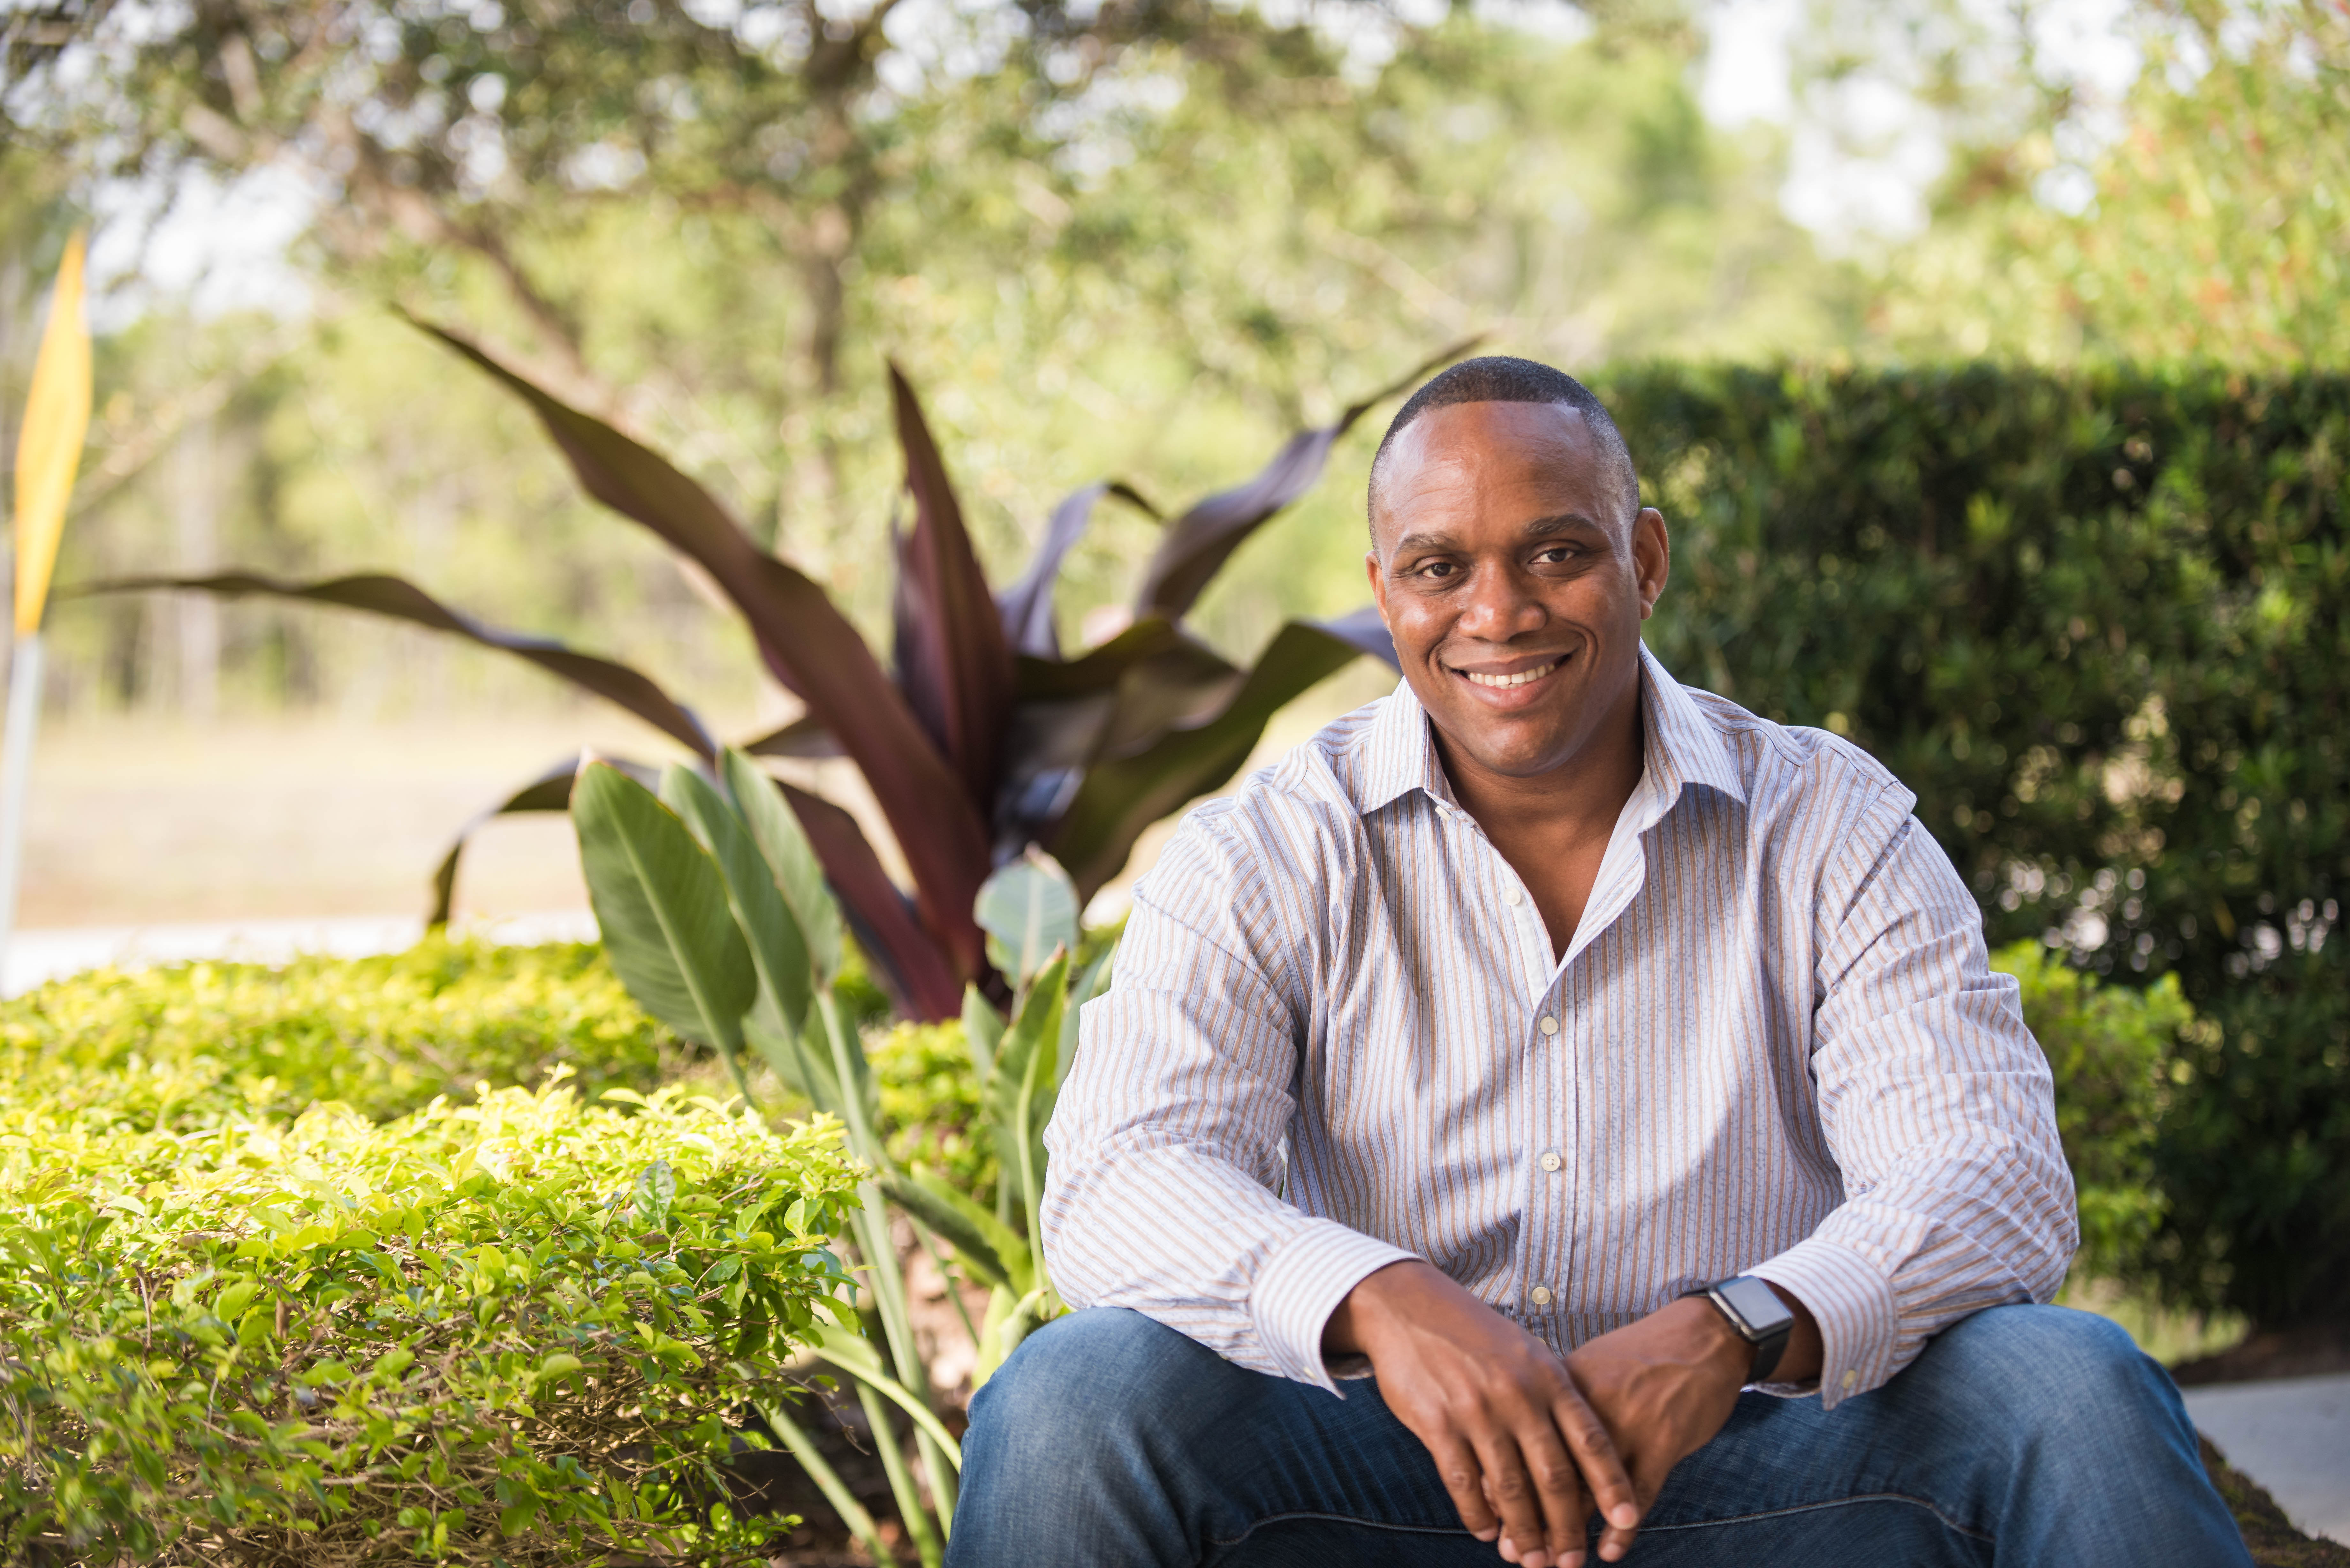 Lester Thornhill is CEO of Life's Abundance